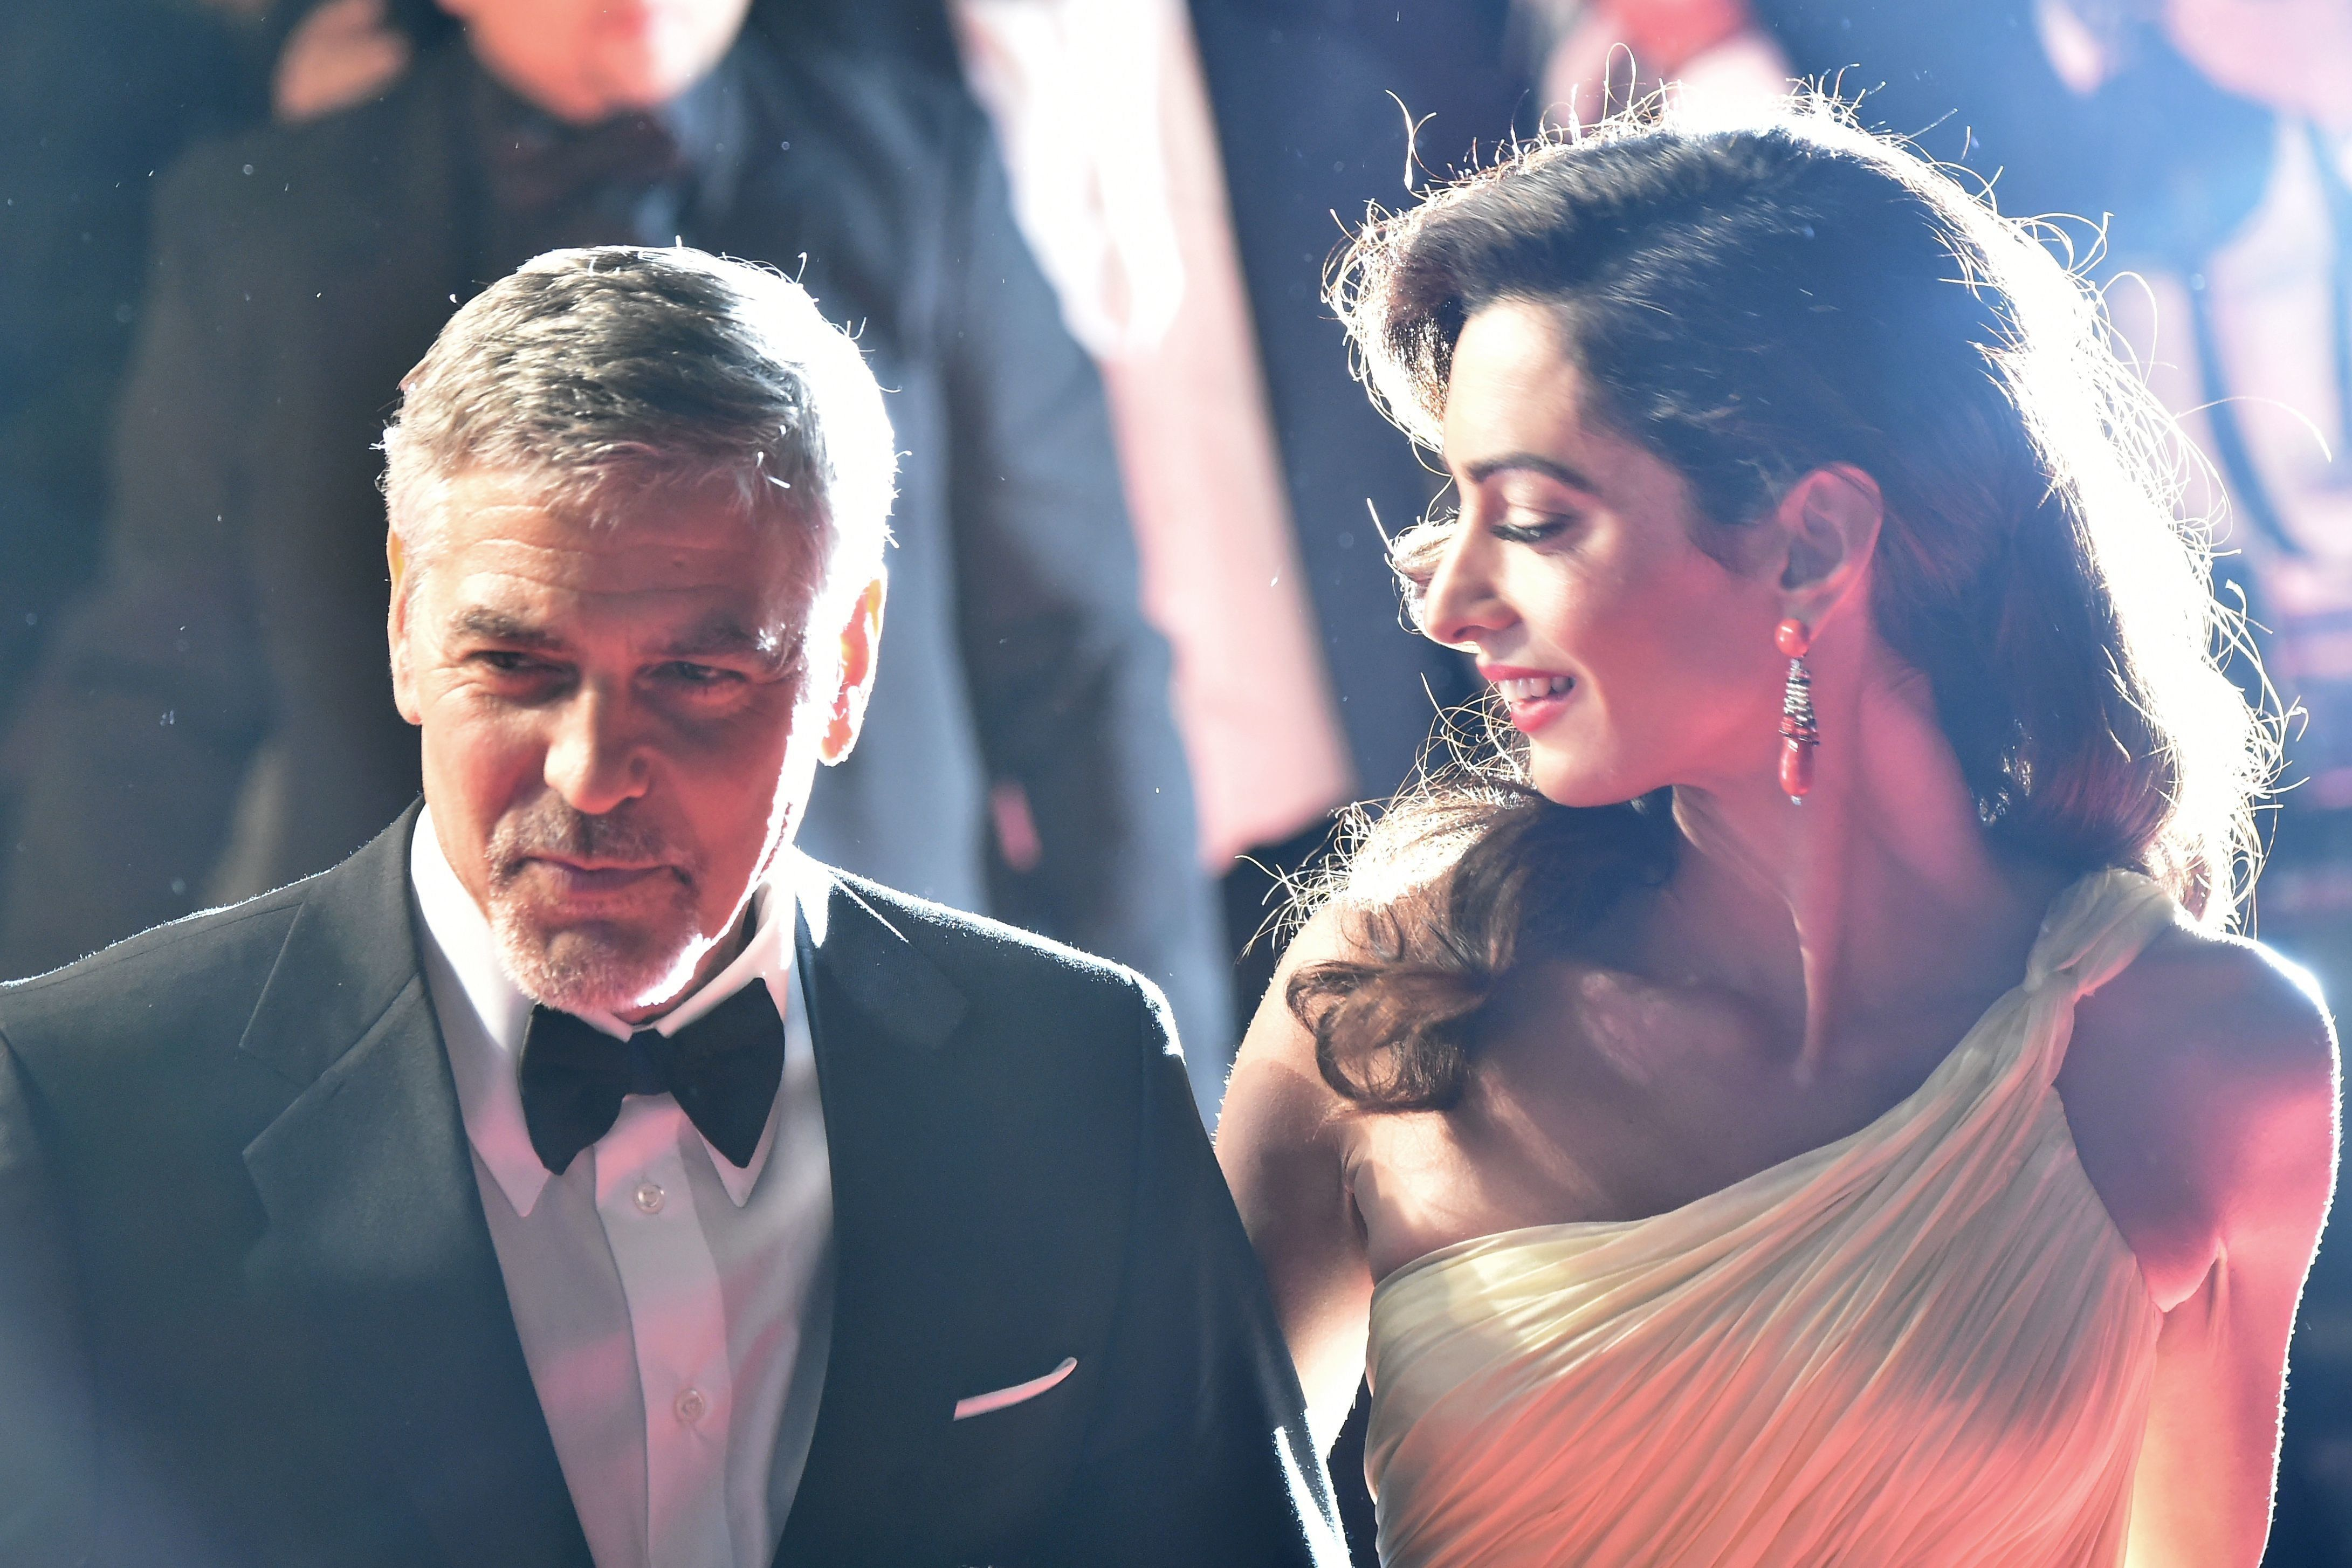 US actor George Clooney (L) and his wife, British-Lebanese lawyer Amal Clooney leave on May 12, 2016 the Festival Palace after the screening of the film 'Money Monster' at the 69th Cannes Film Festival in Cannes, southern France. / AFP / ALBERTO PIZZOLI        (Photo credit should read ALBERTO PIZZOLI/AFP/Getty Images)